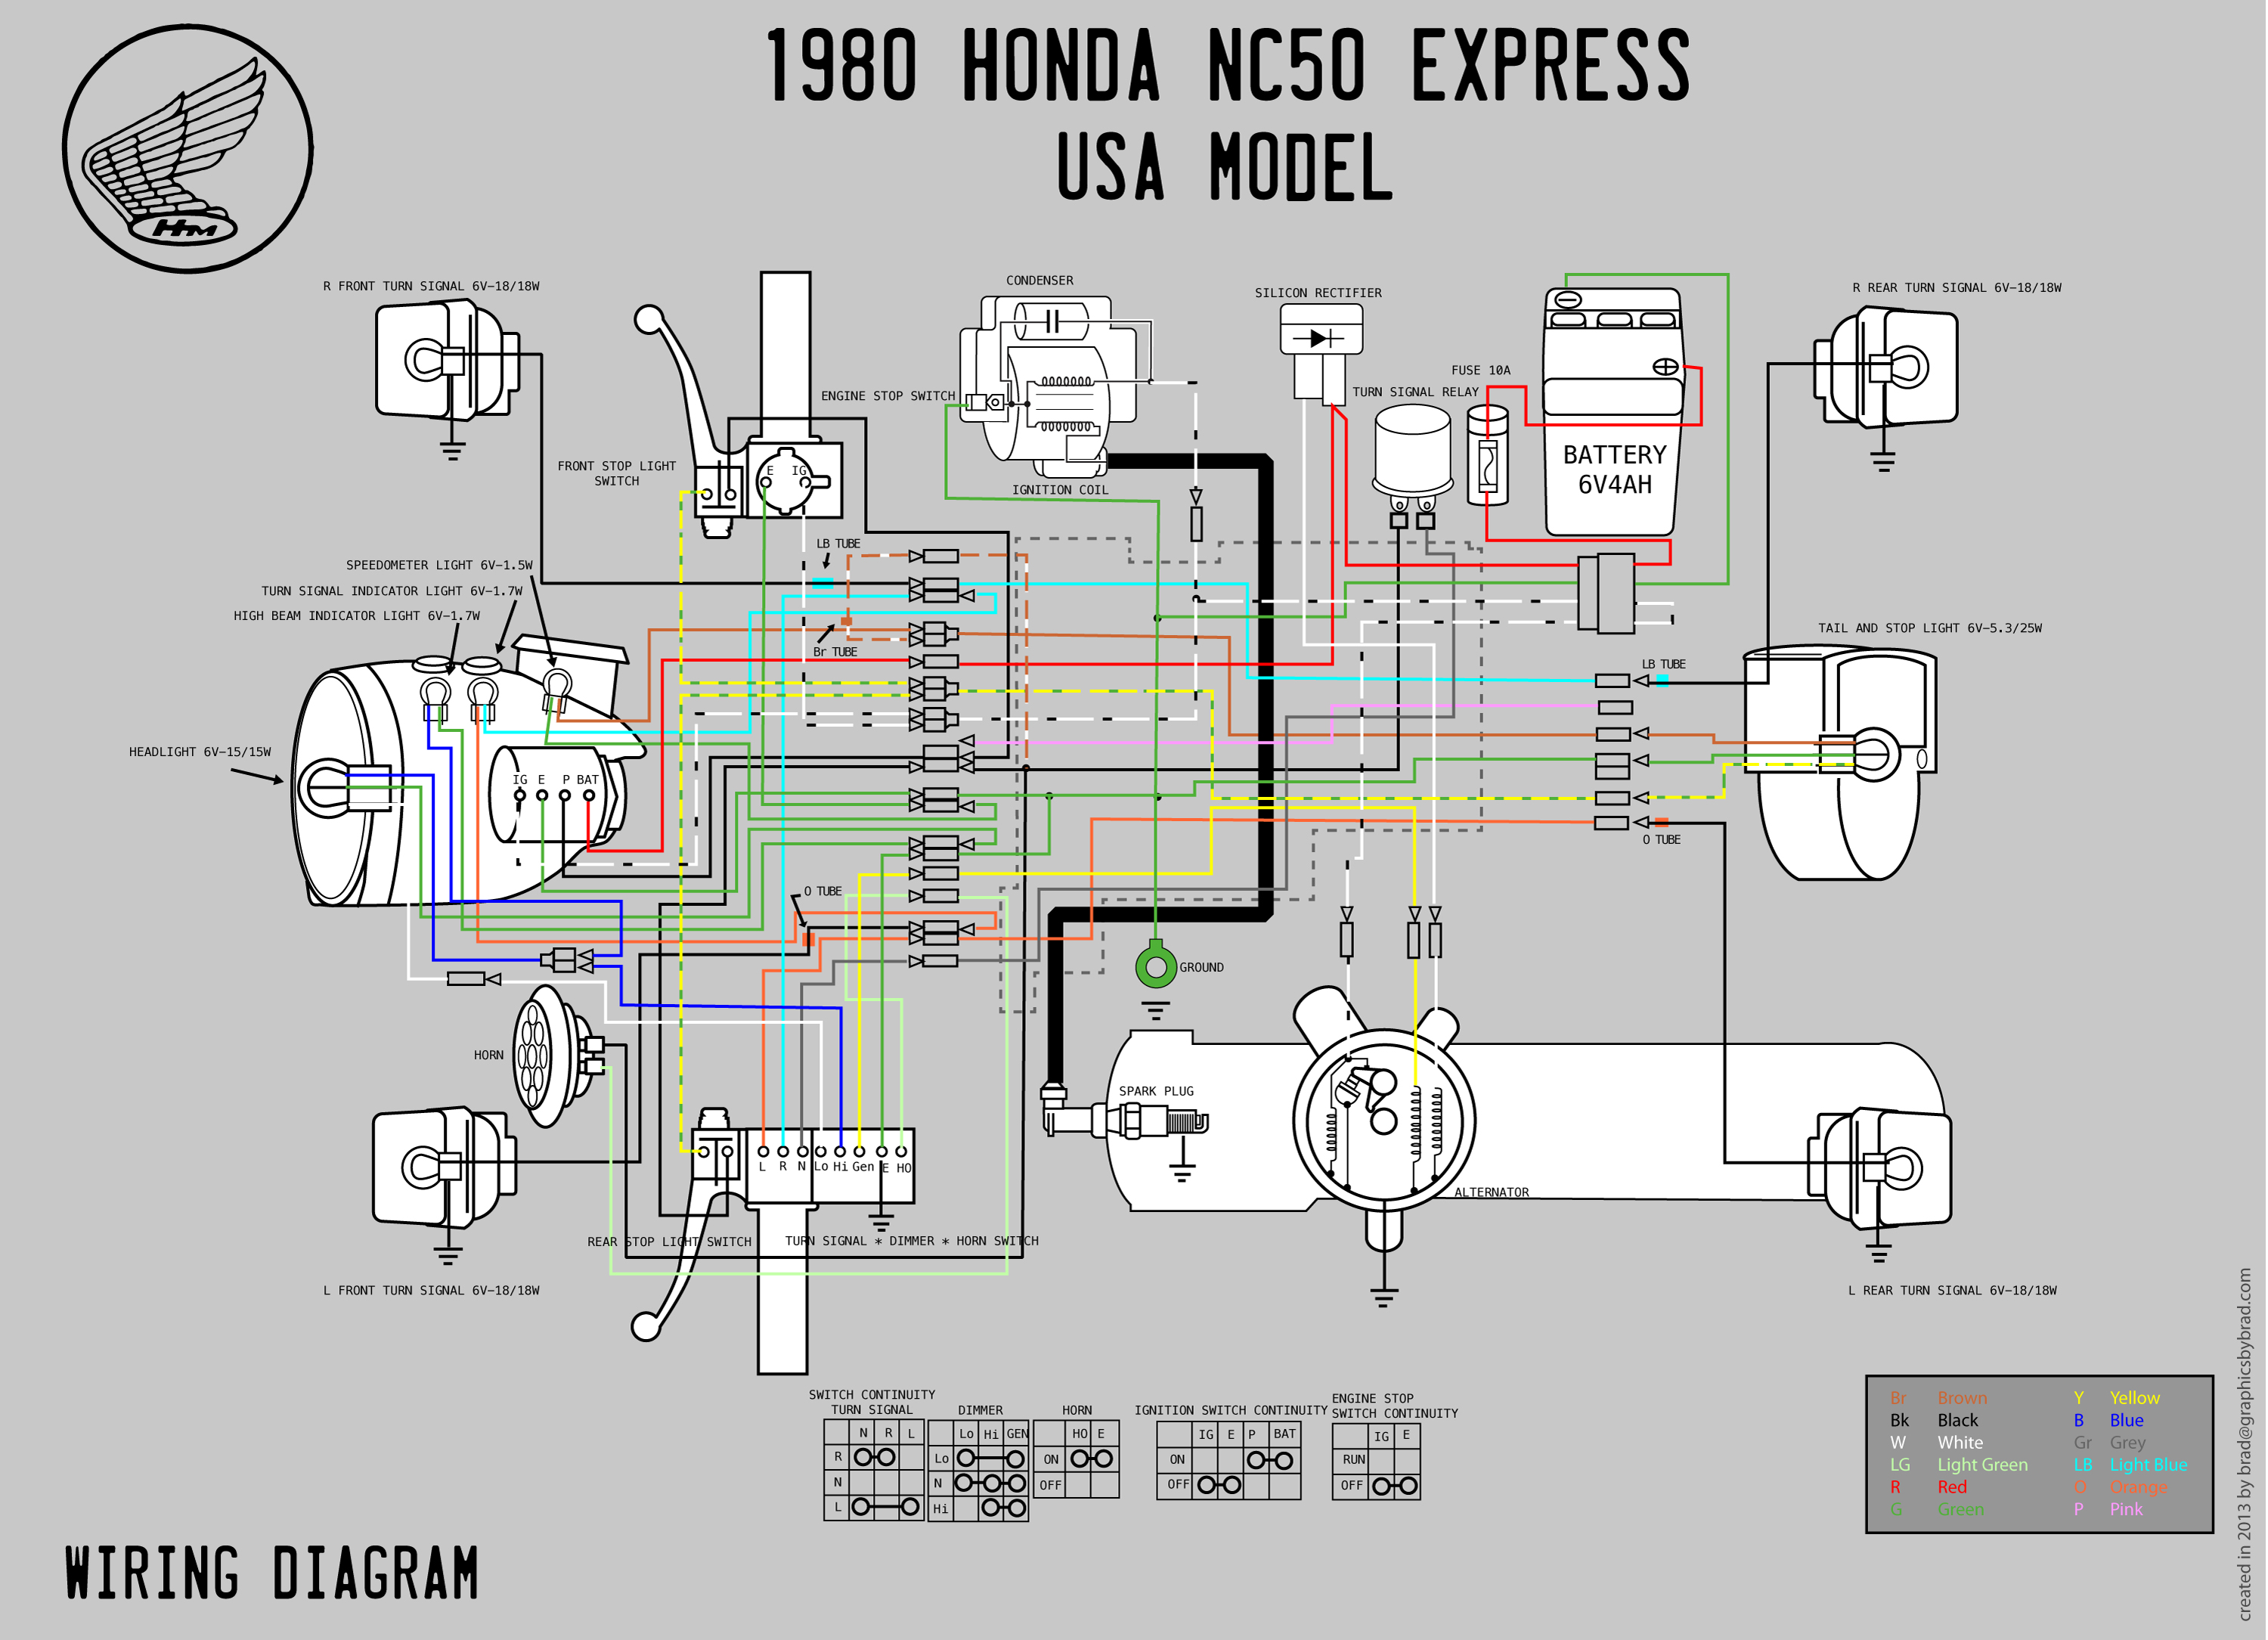 1980 nc50 wiring lrg 1980 honda express wiring diagram 1980 wiring diagrams collection tg1 express wiring diagram at bakdesigns.co